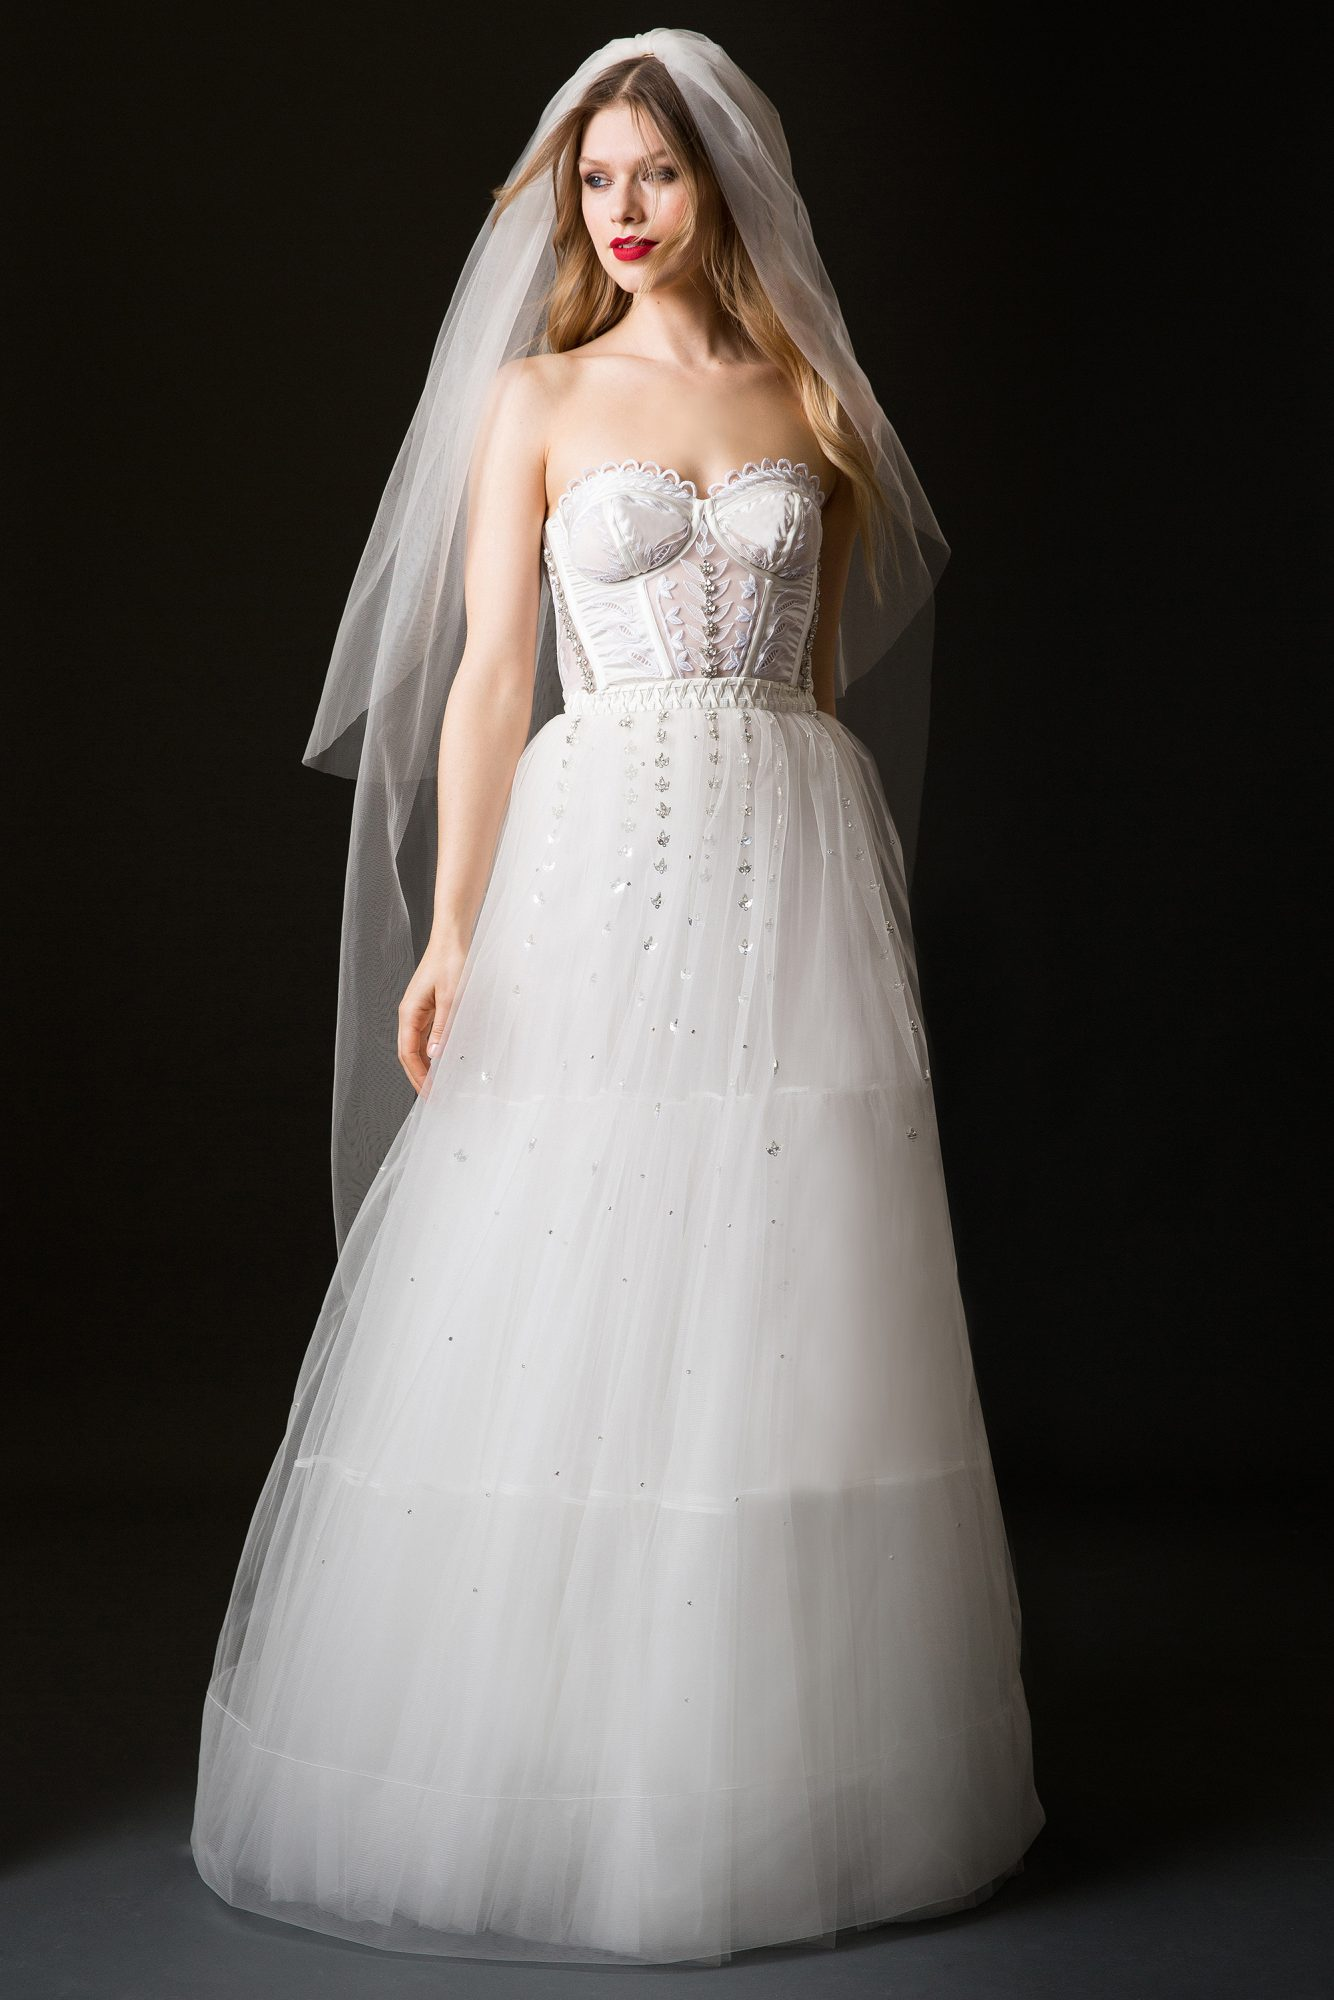 temperley wedding dress spring 2019 a-line with corset top and tulle skirt